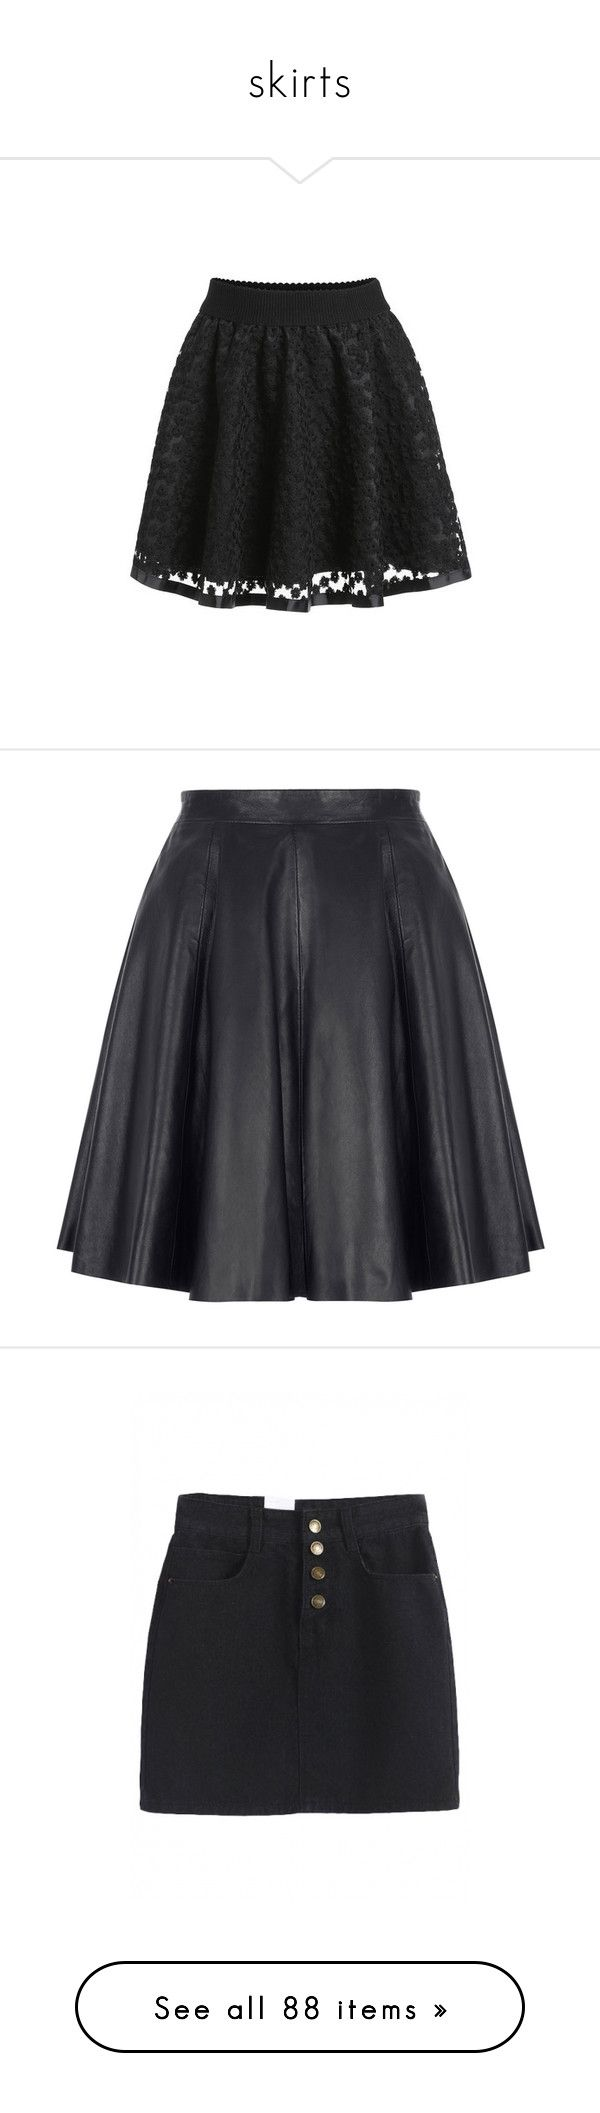 """""""skirts"""" by yumikochan ❤ liked on Polyvore featuring skirts, bottoms, black, short black skirt, short circle skirt, black skater skirt, skater skirt, lace skater skirt, high rise skirts and high-waisted skirts"""